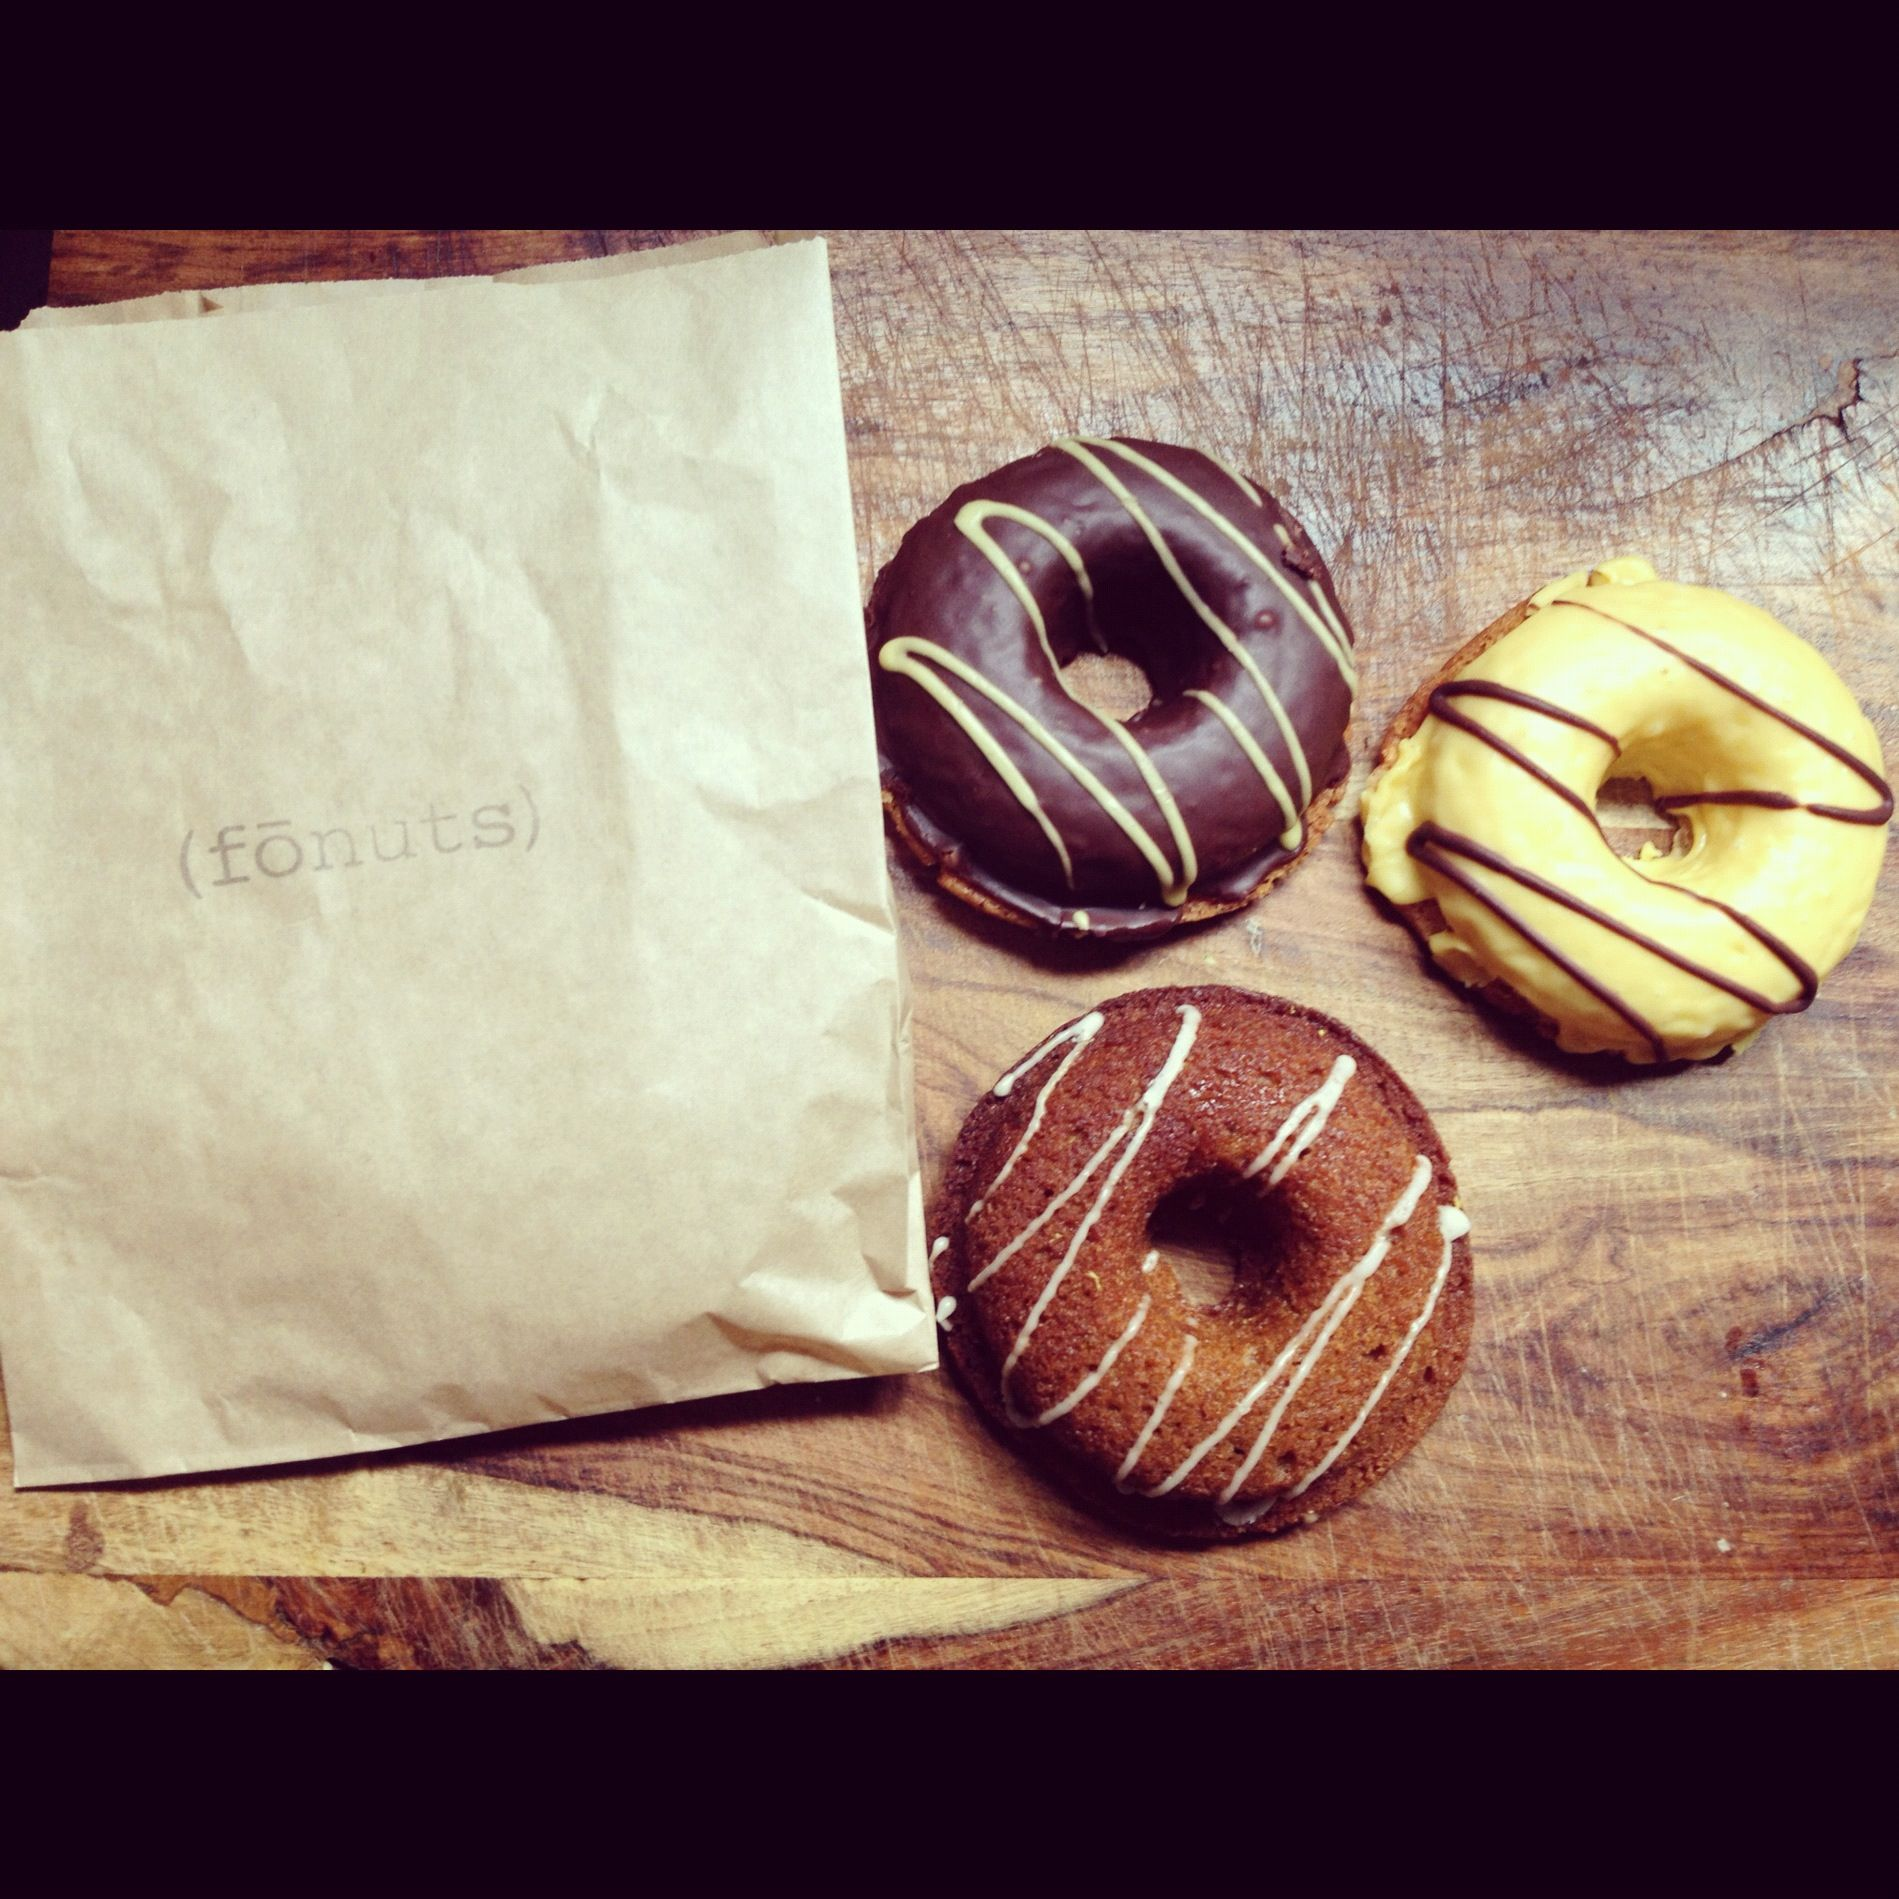 Vegan GlutenFree Donuts Los Angeles Tested and Approved